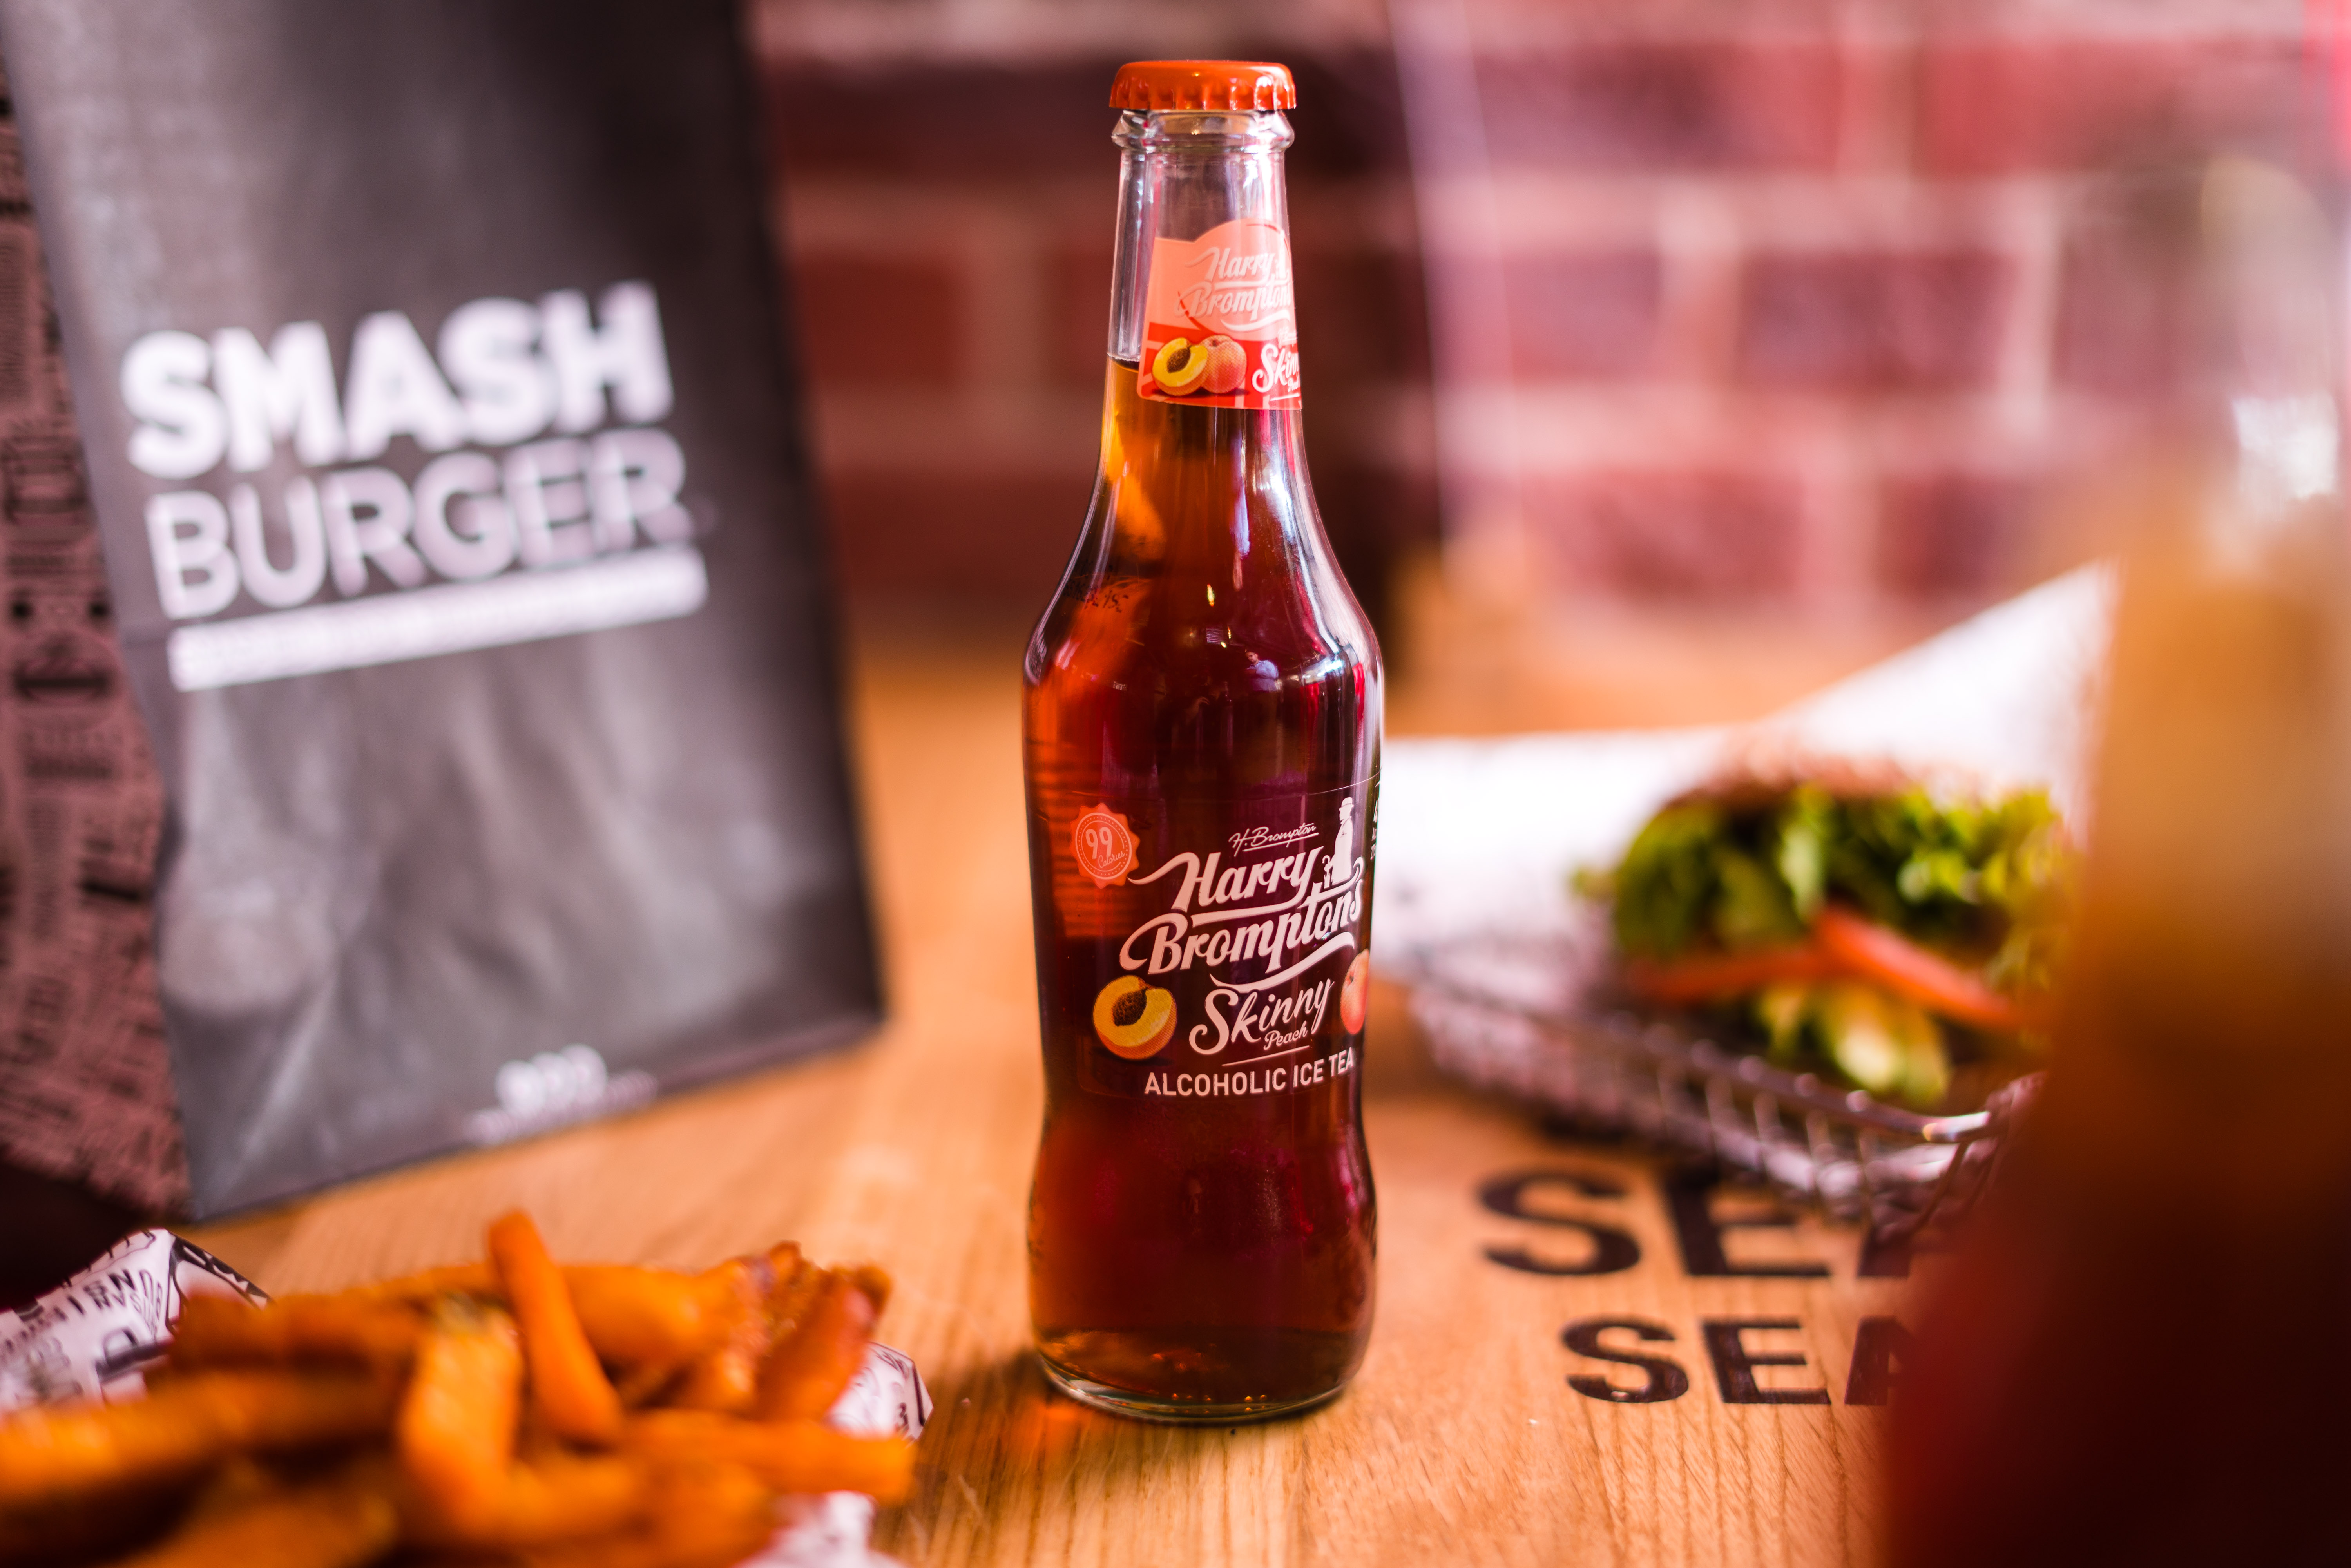 food and drink from Smashburger